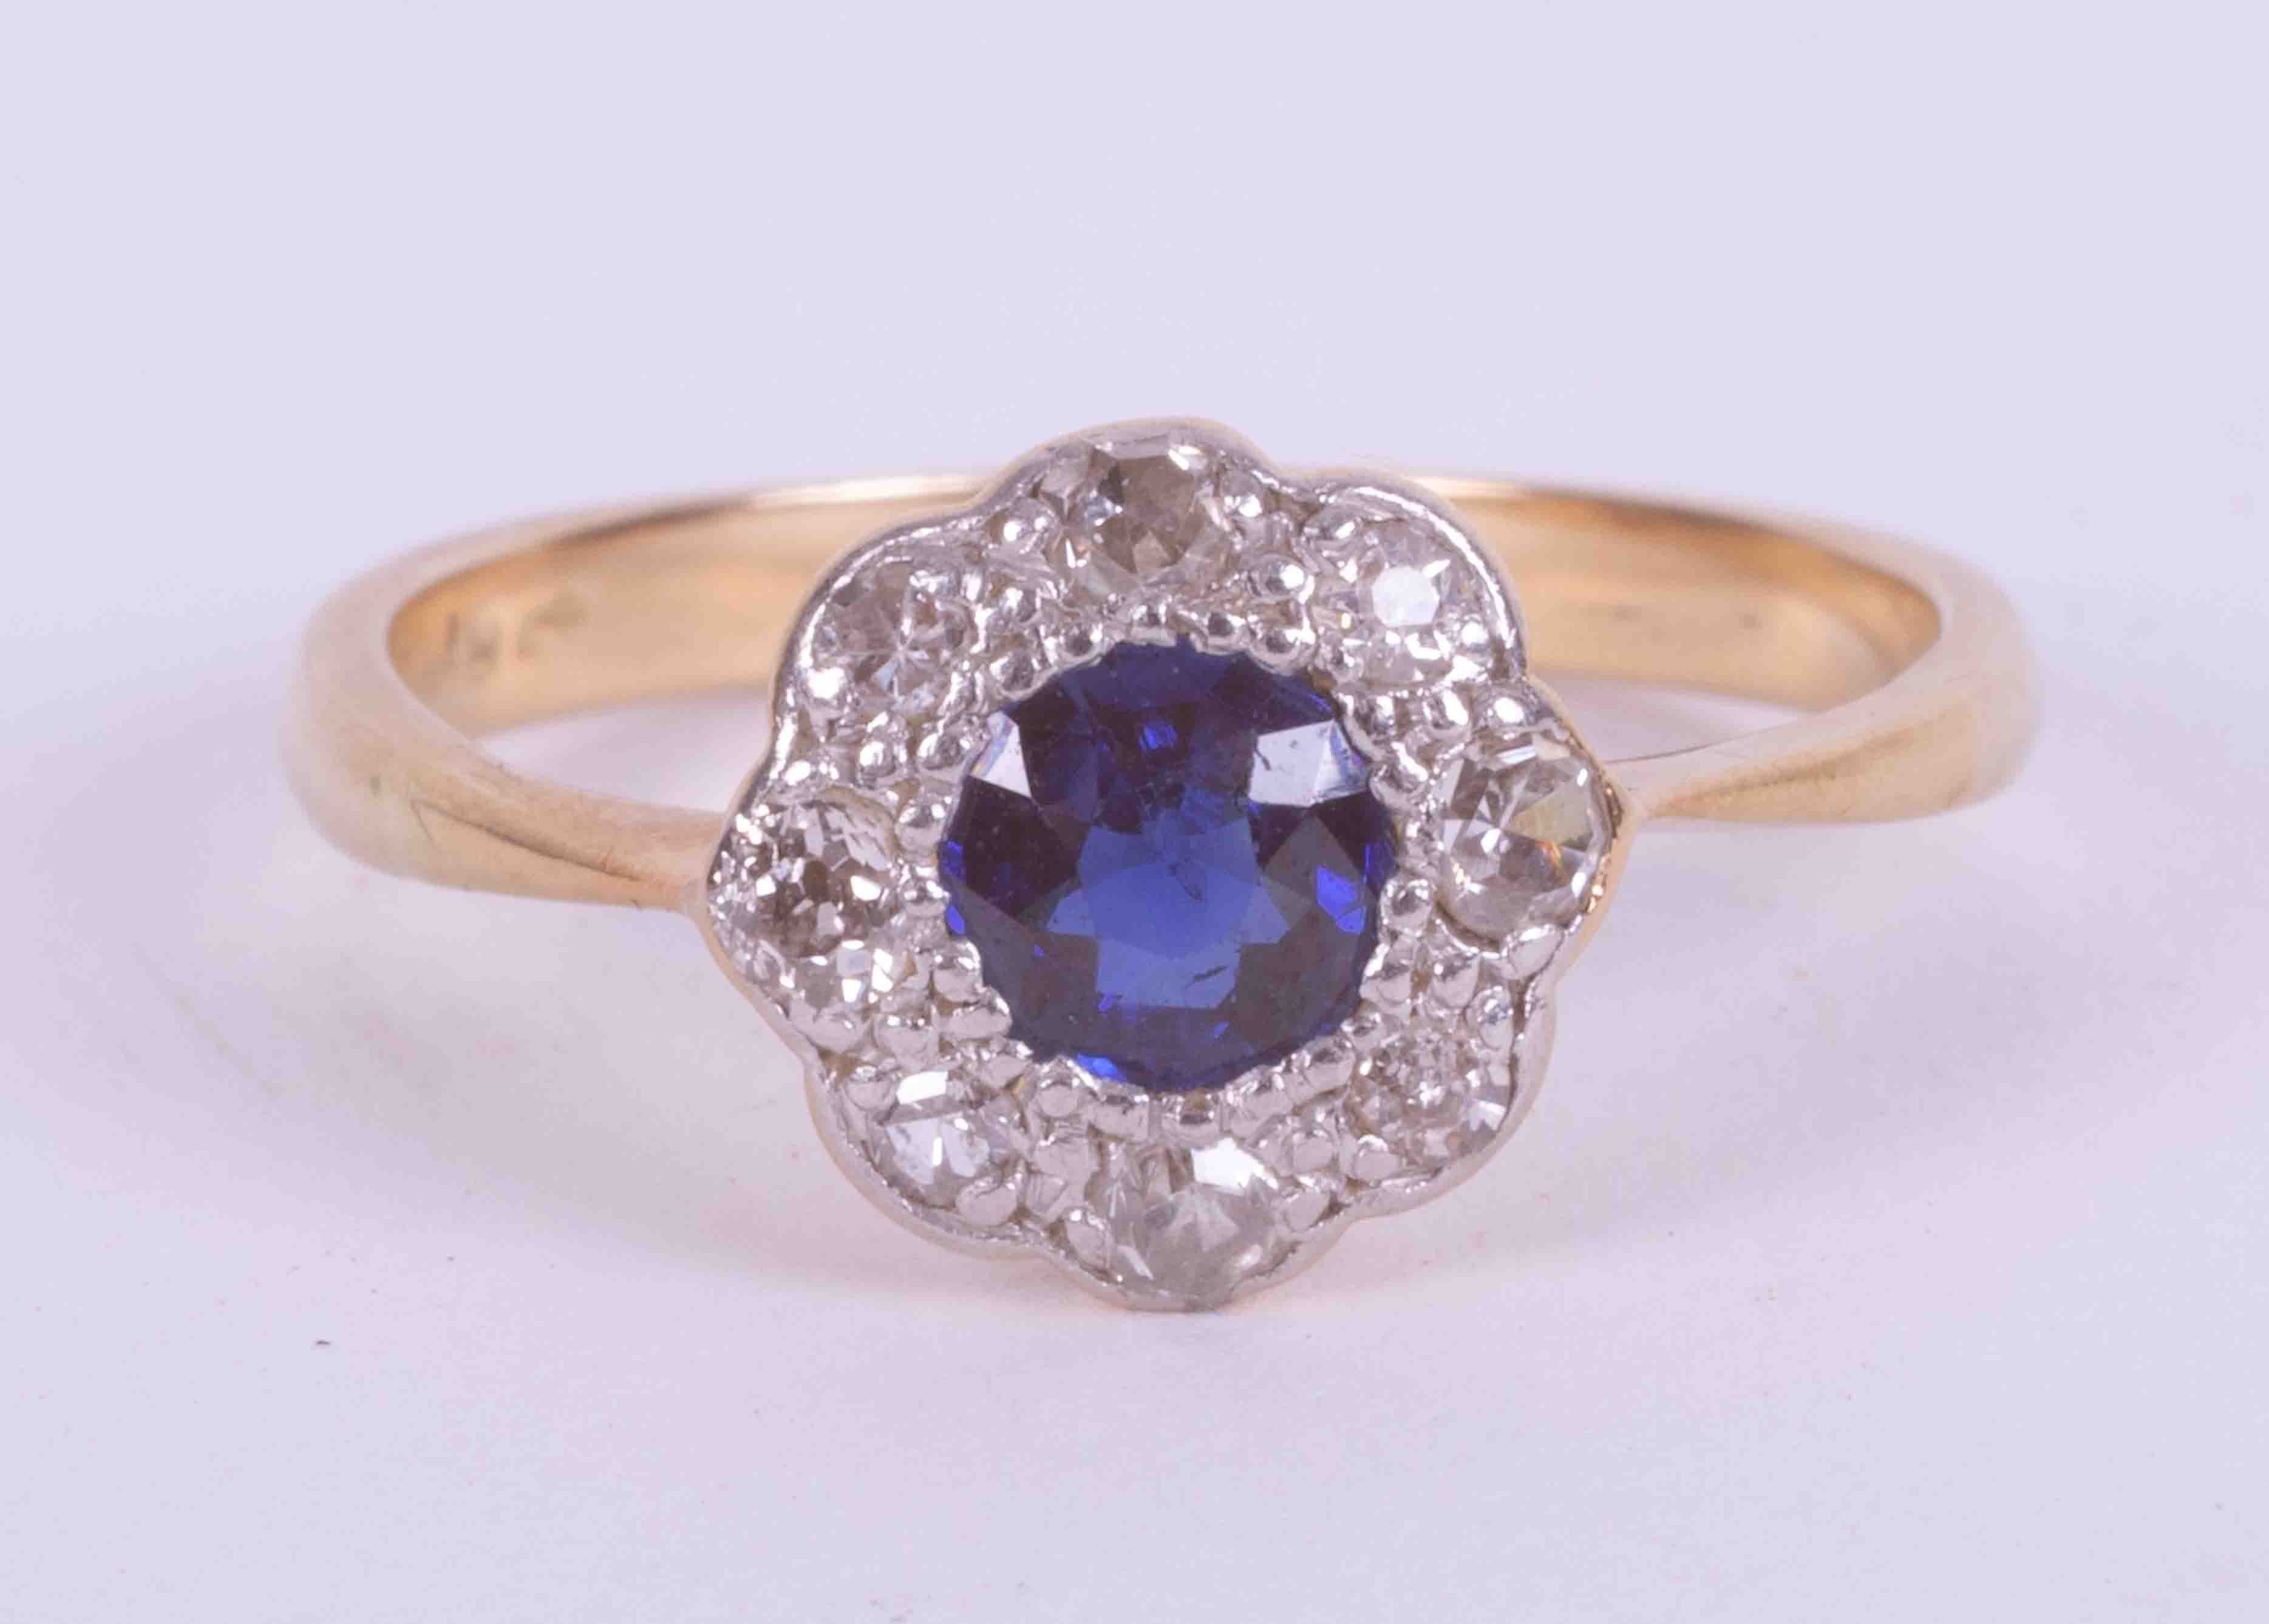 An 18ct yellow & white gold cluster ring set with an old cut round sapphire approx. 0.40 carats